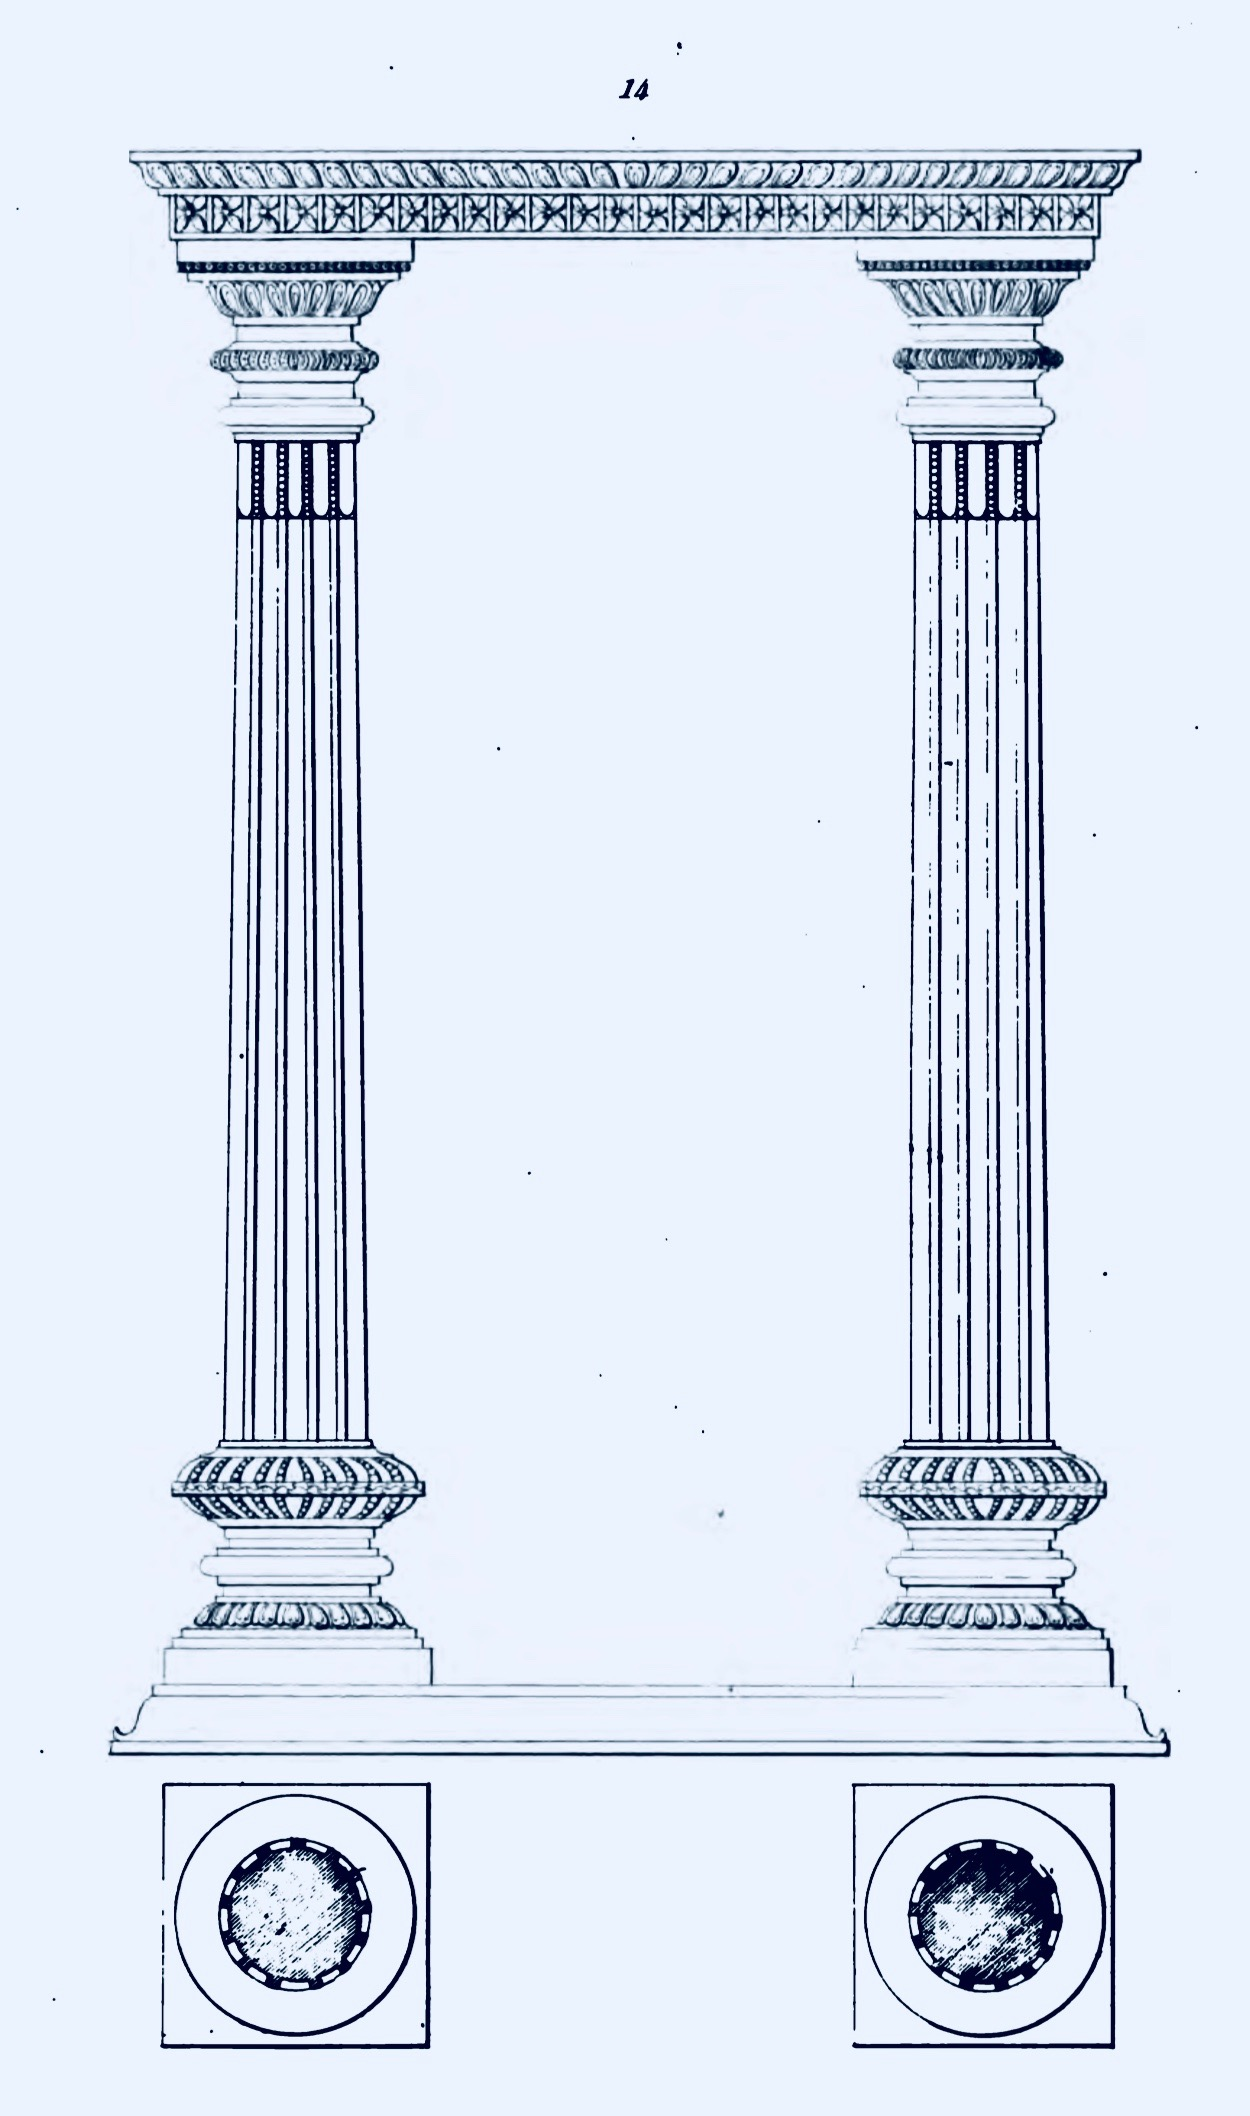 1250x2116 File1834 Sketch Of Pillar Elements In Hindu Temple Architecture